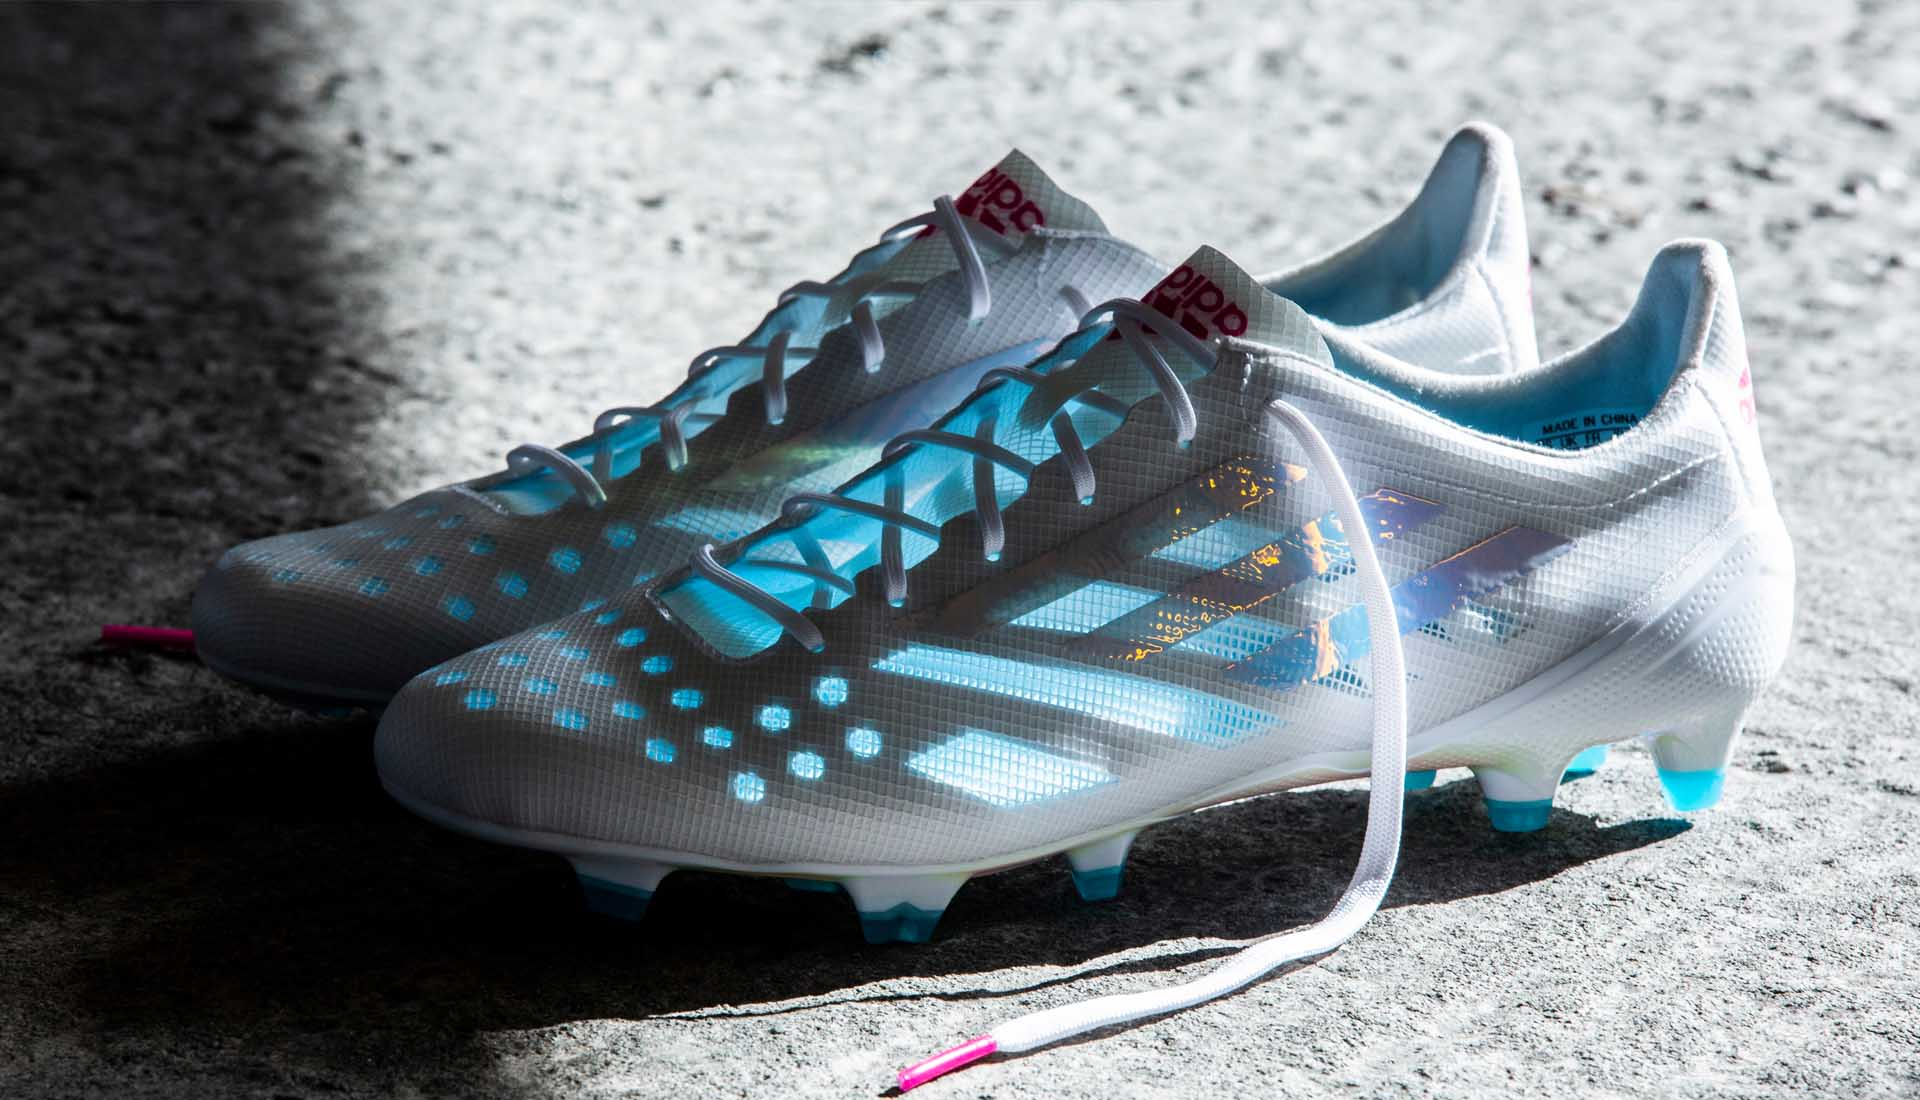 adidas Launch The Limited Edition X 99.1 Boot SoccerBible